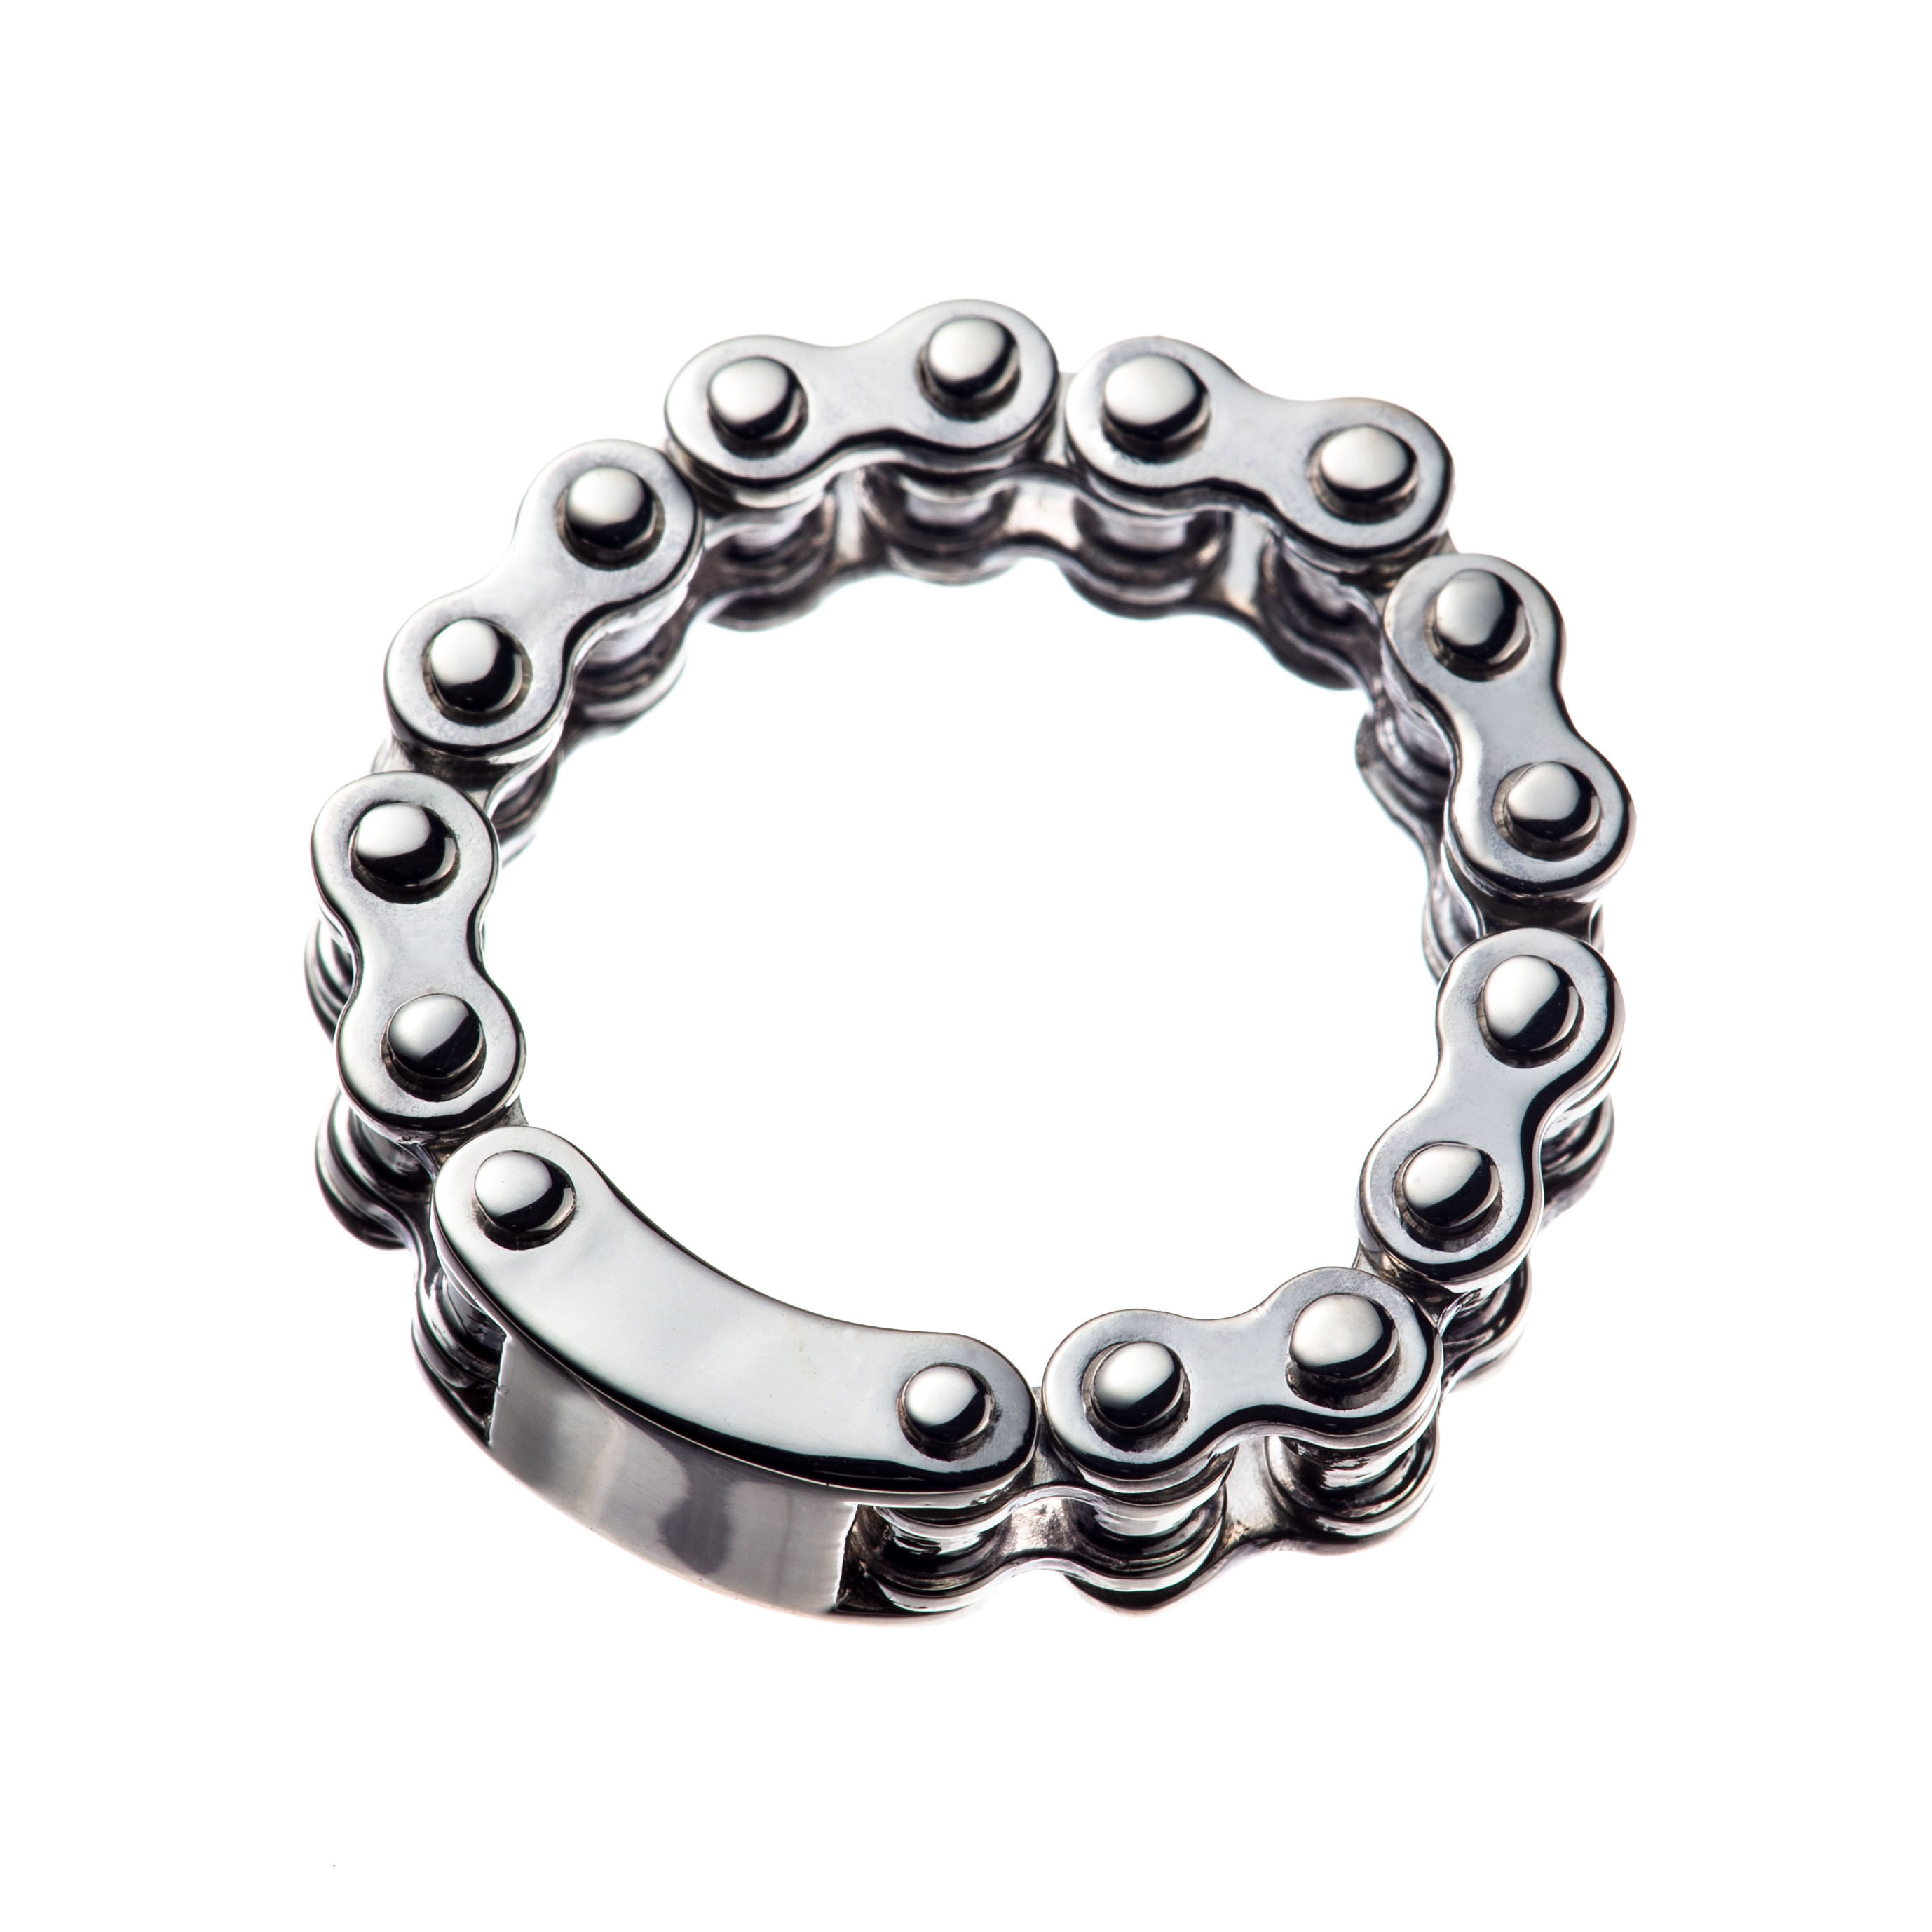 BIKE CHAIN RING S